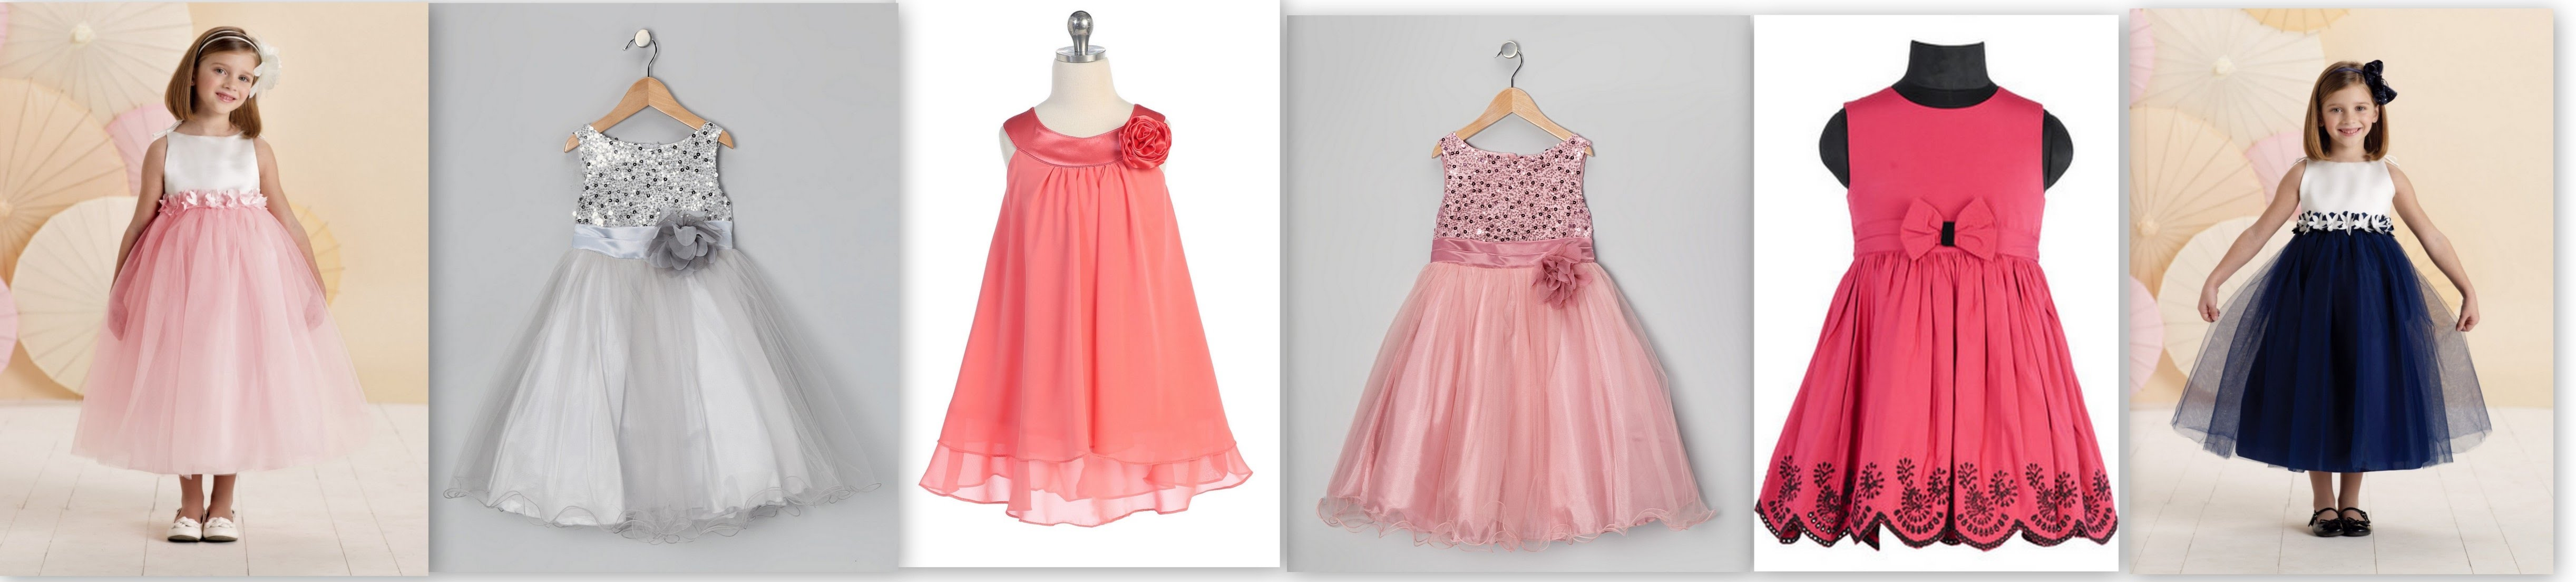 edf7e01ffa88 Party Wear Frock - Saarah Kids Collection